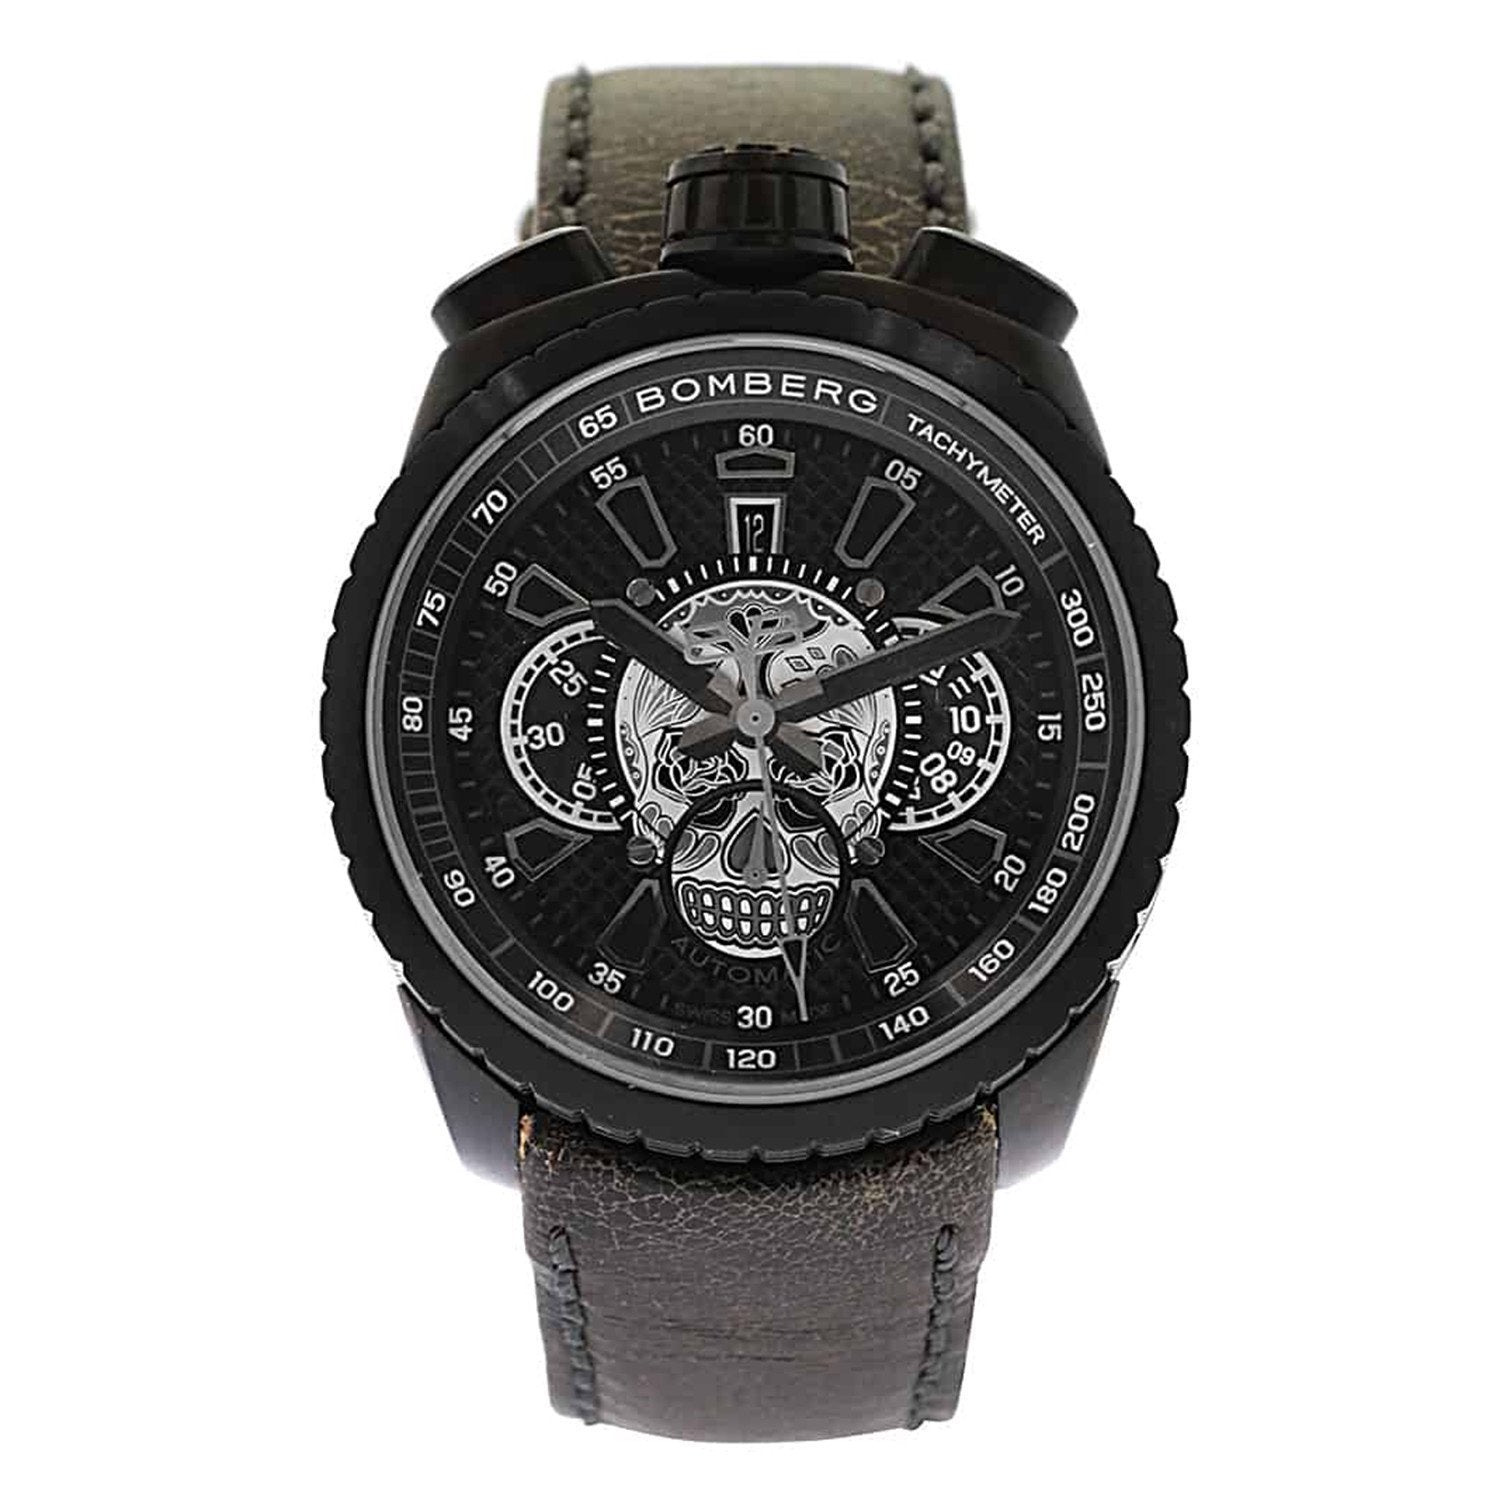 Bomberg BOLT-68 Automatic Chronograph Skull Limited Edition